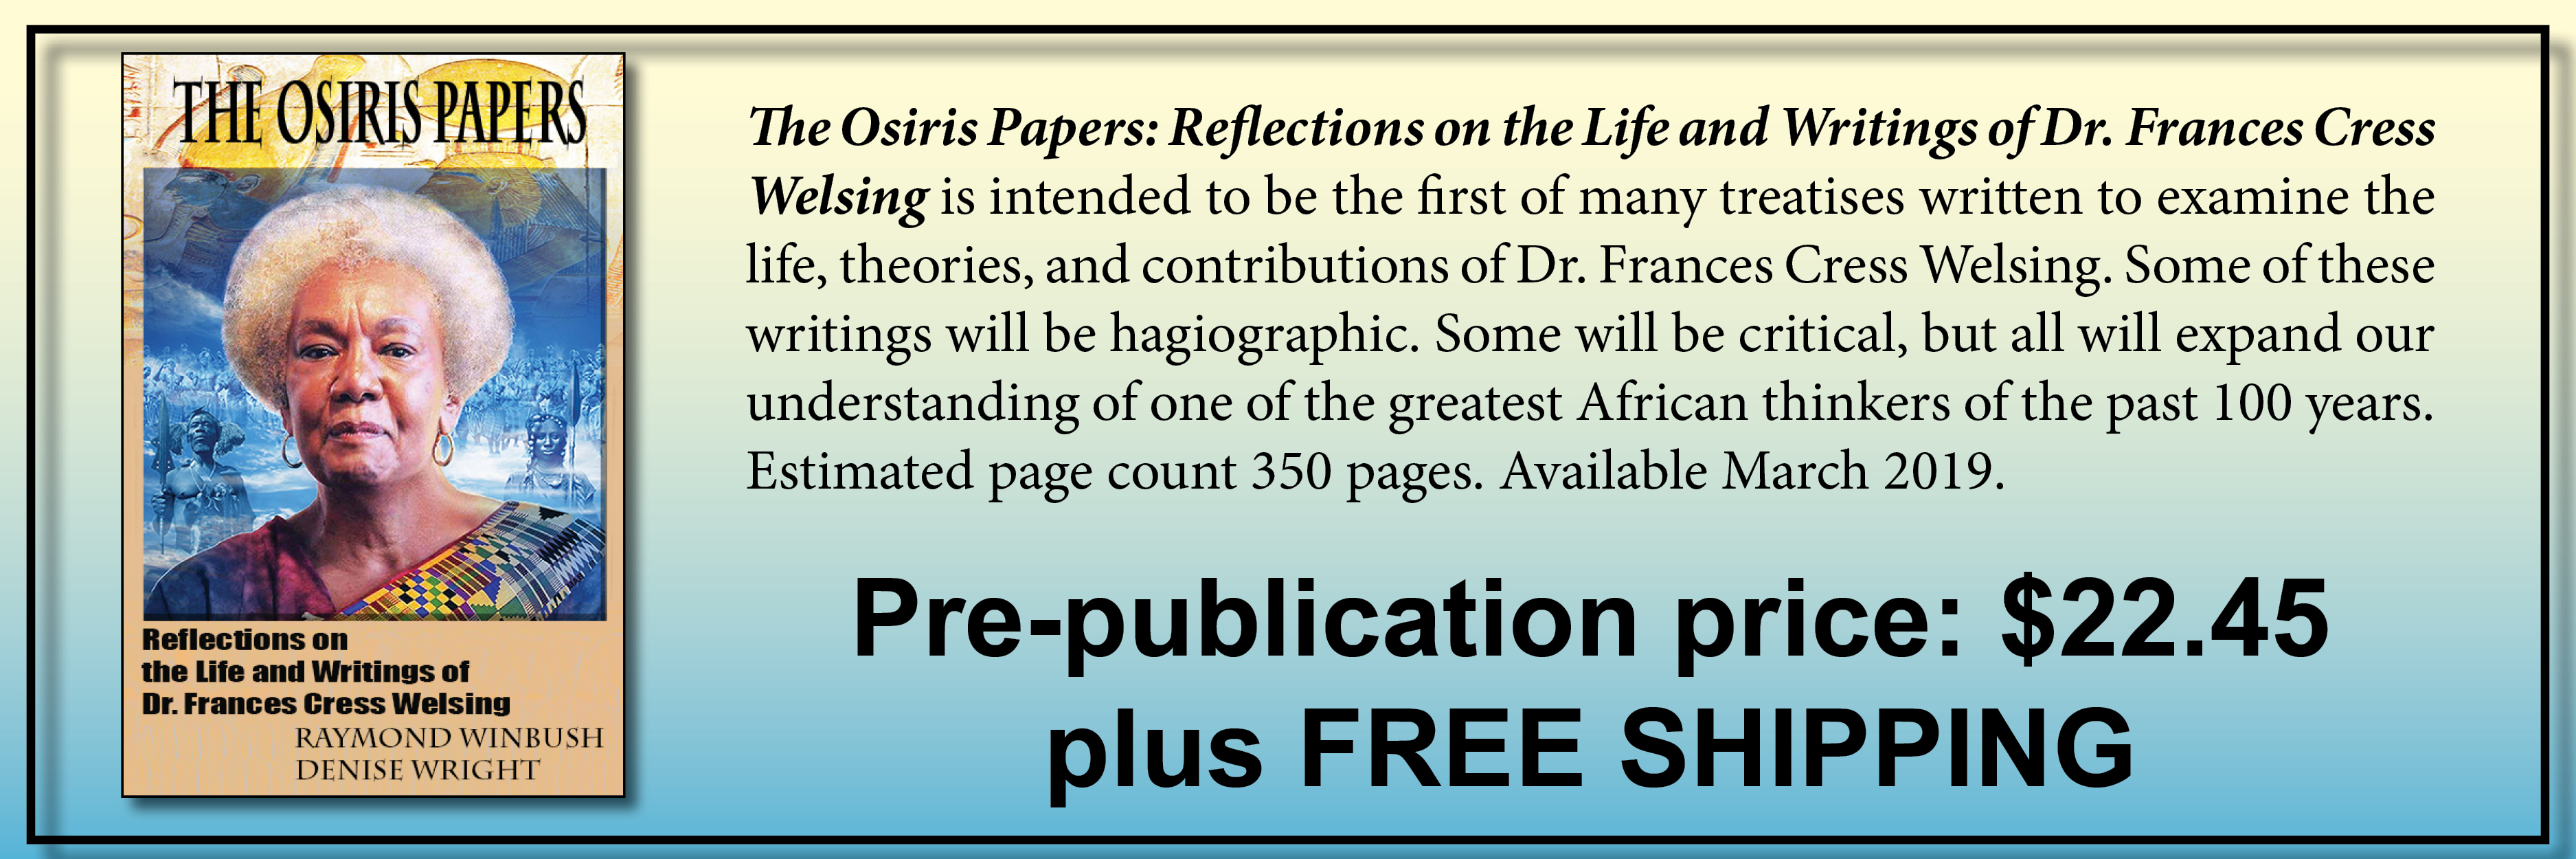 osiris-papers-prepub-offer.jpg